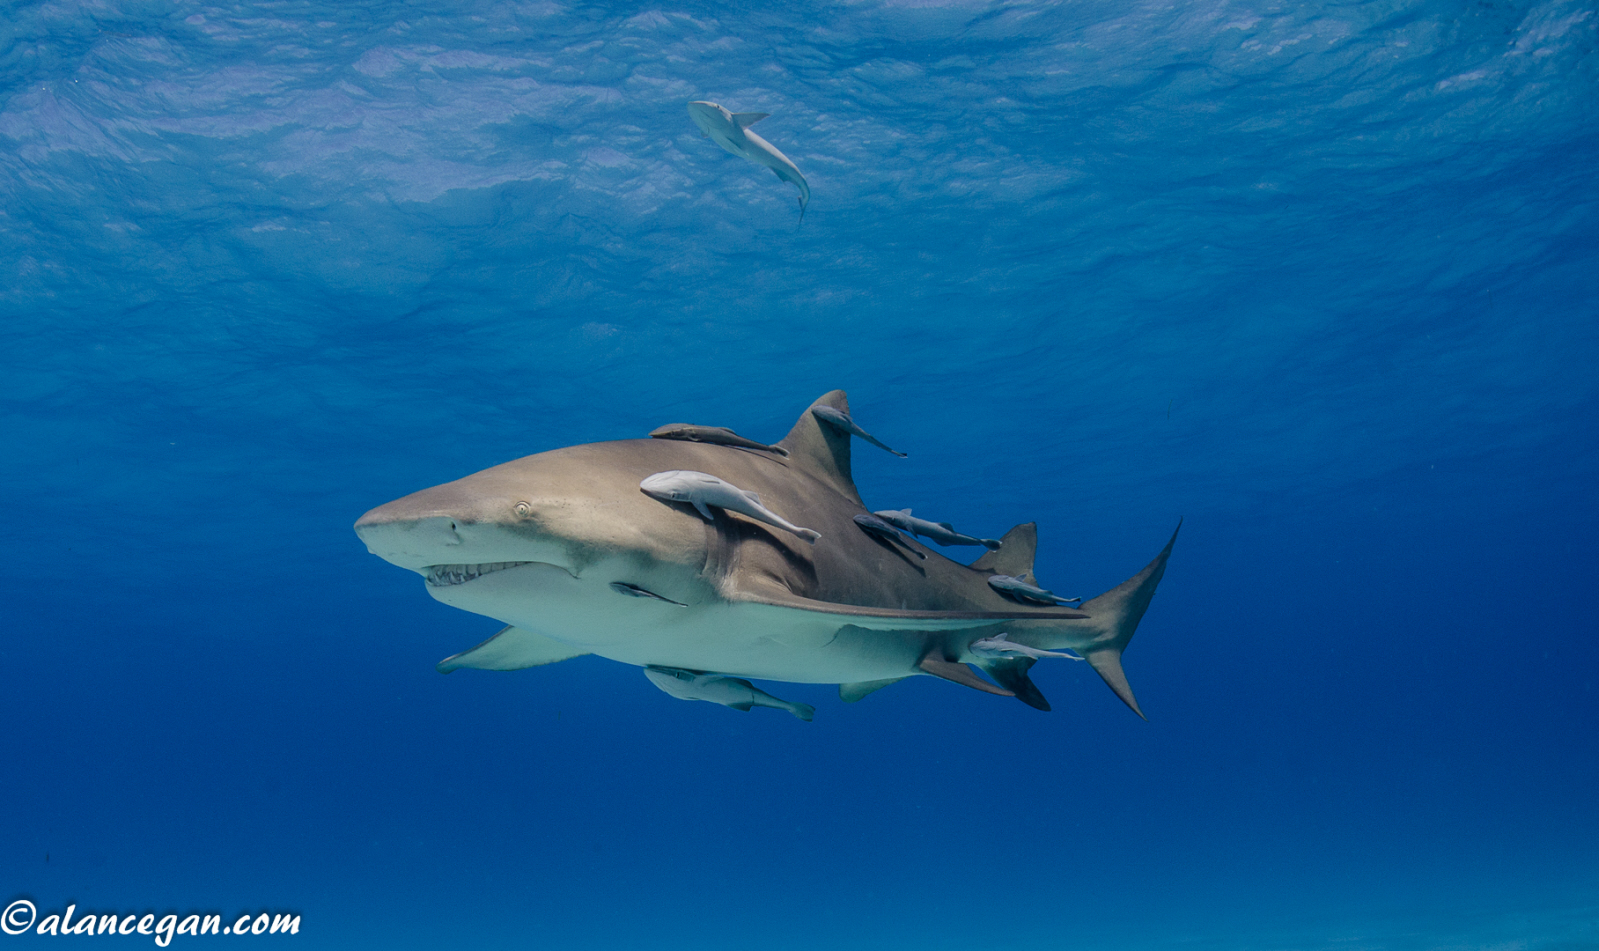 remora and sharks symbiotic relationship with fish